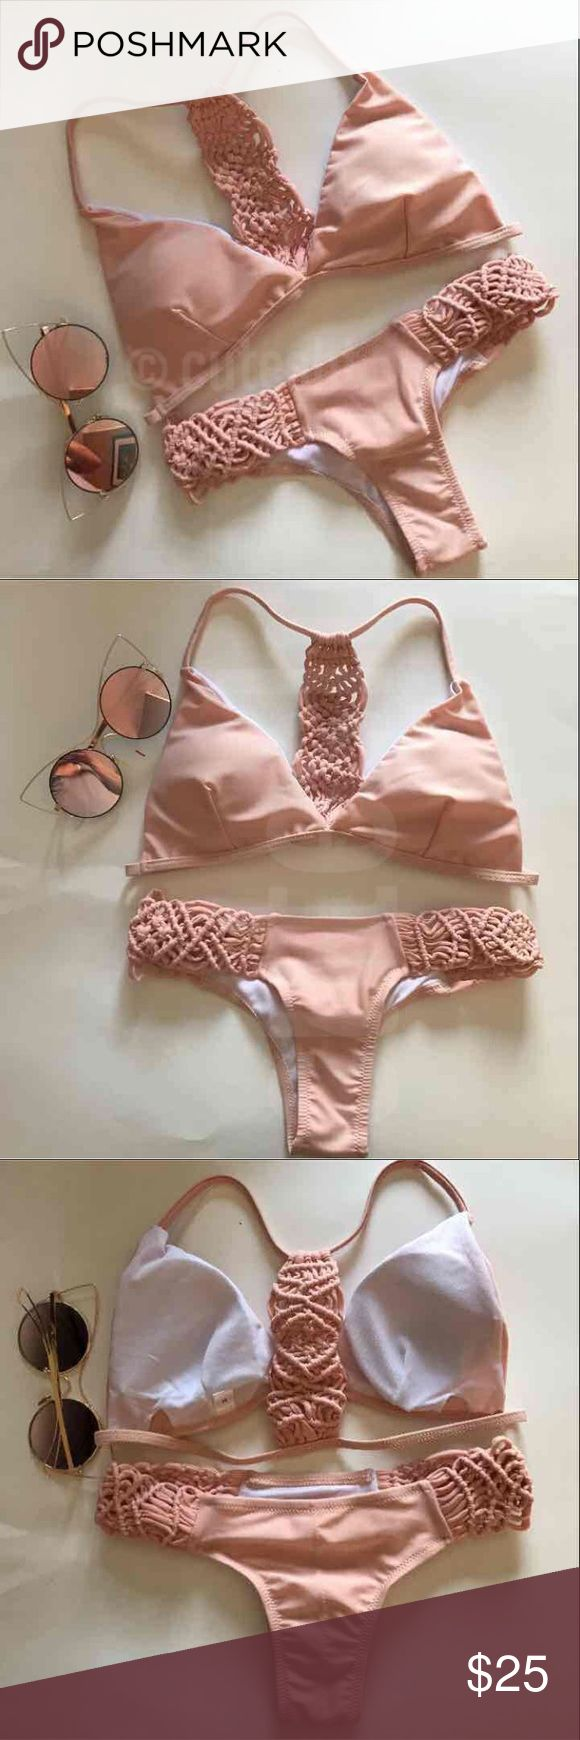 New Peachy Pink Braided Bohemian Bikini Set Top is size medium but can also fit small. Fits A, B, and petite C. Has removable padding.  Medium bottoms fit SMALL (4-6)  Ships same/next day! Swim Bikinis